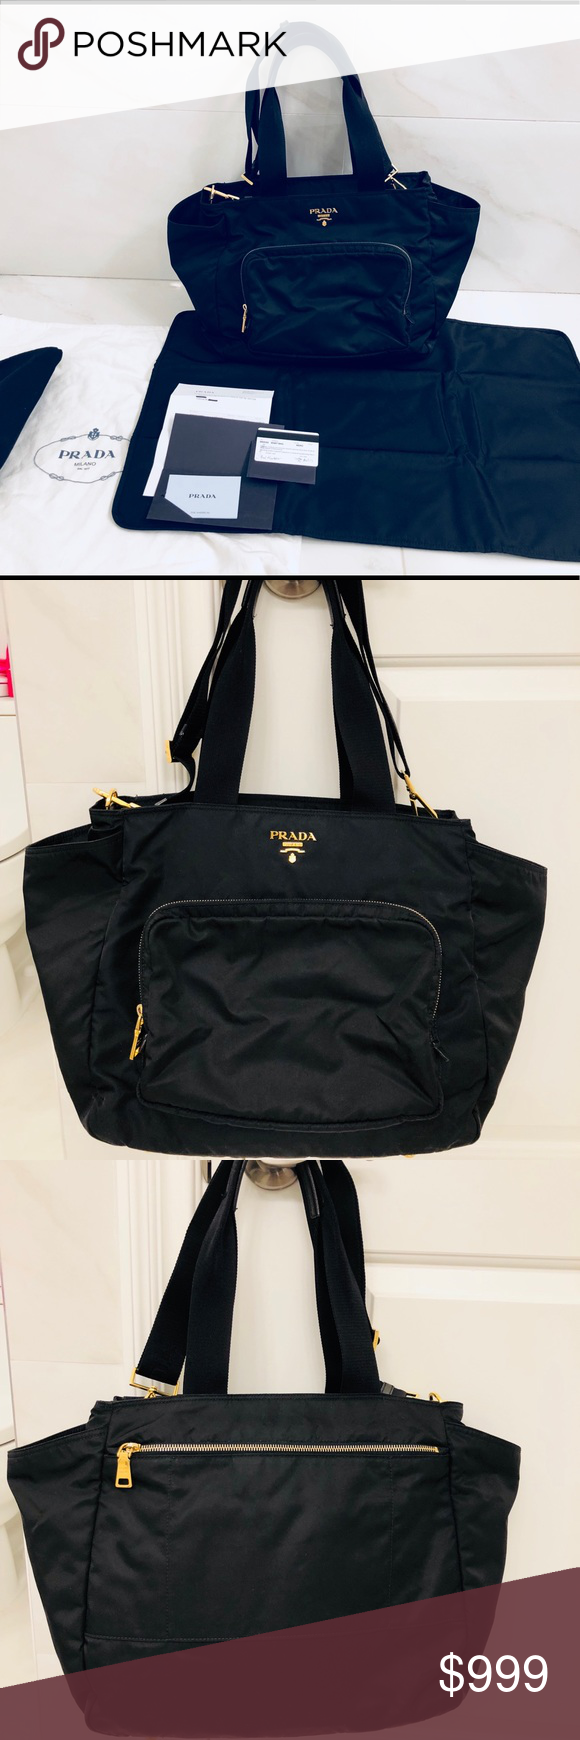 3595db524576 Prada Women s Vela nylon baby bag Guaranteed Authentic. Rare due to the  gold trim which is hard to find. Worn a few times. Still in good condition.